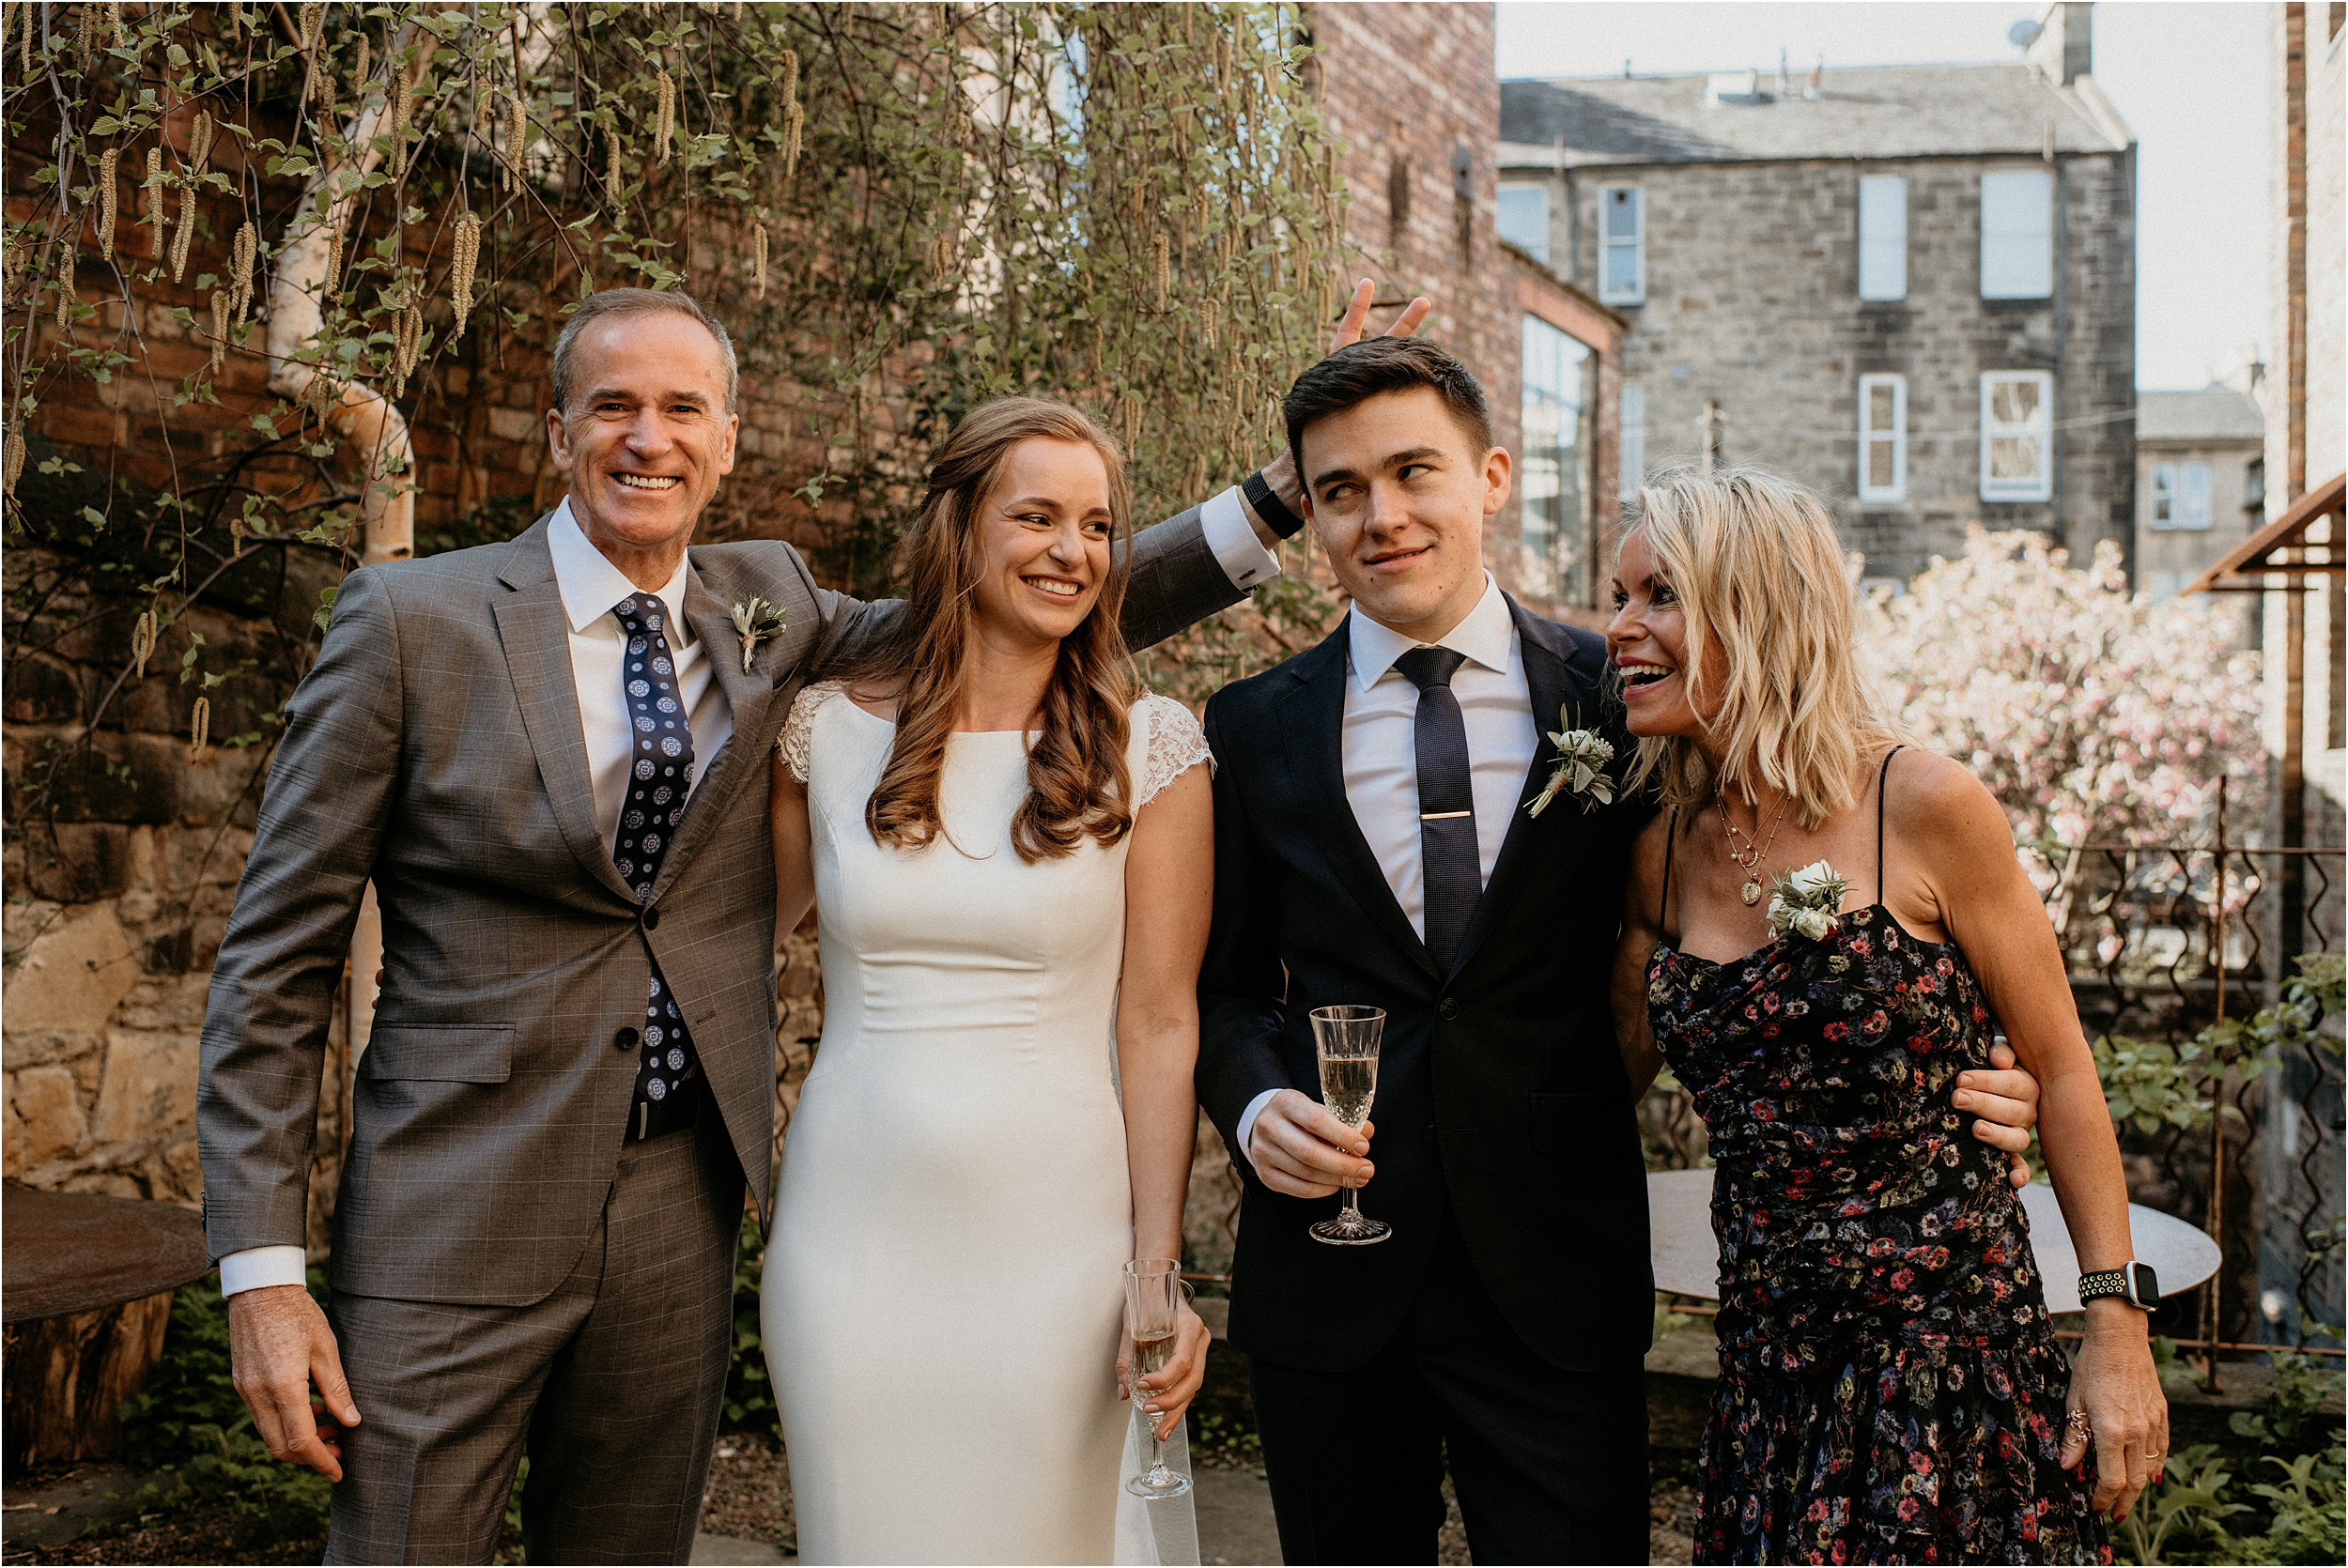 Timberyard-Edinburgh-wedding-photography__0057.jpg